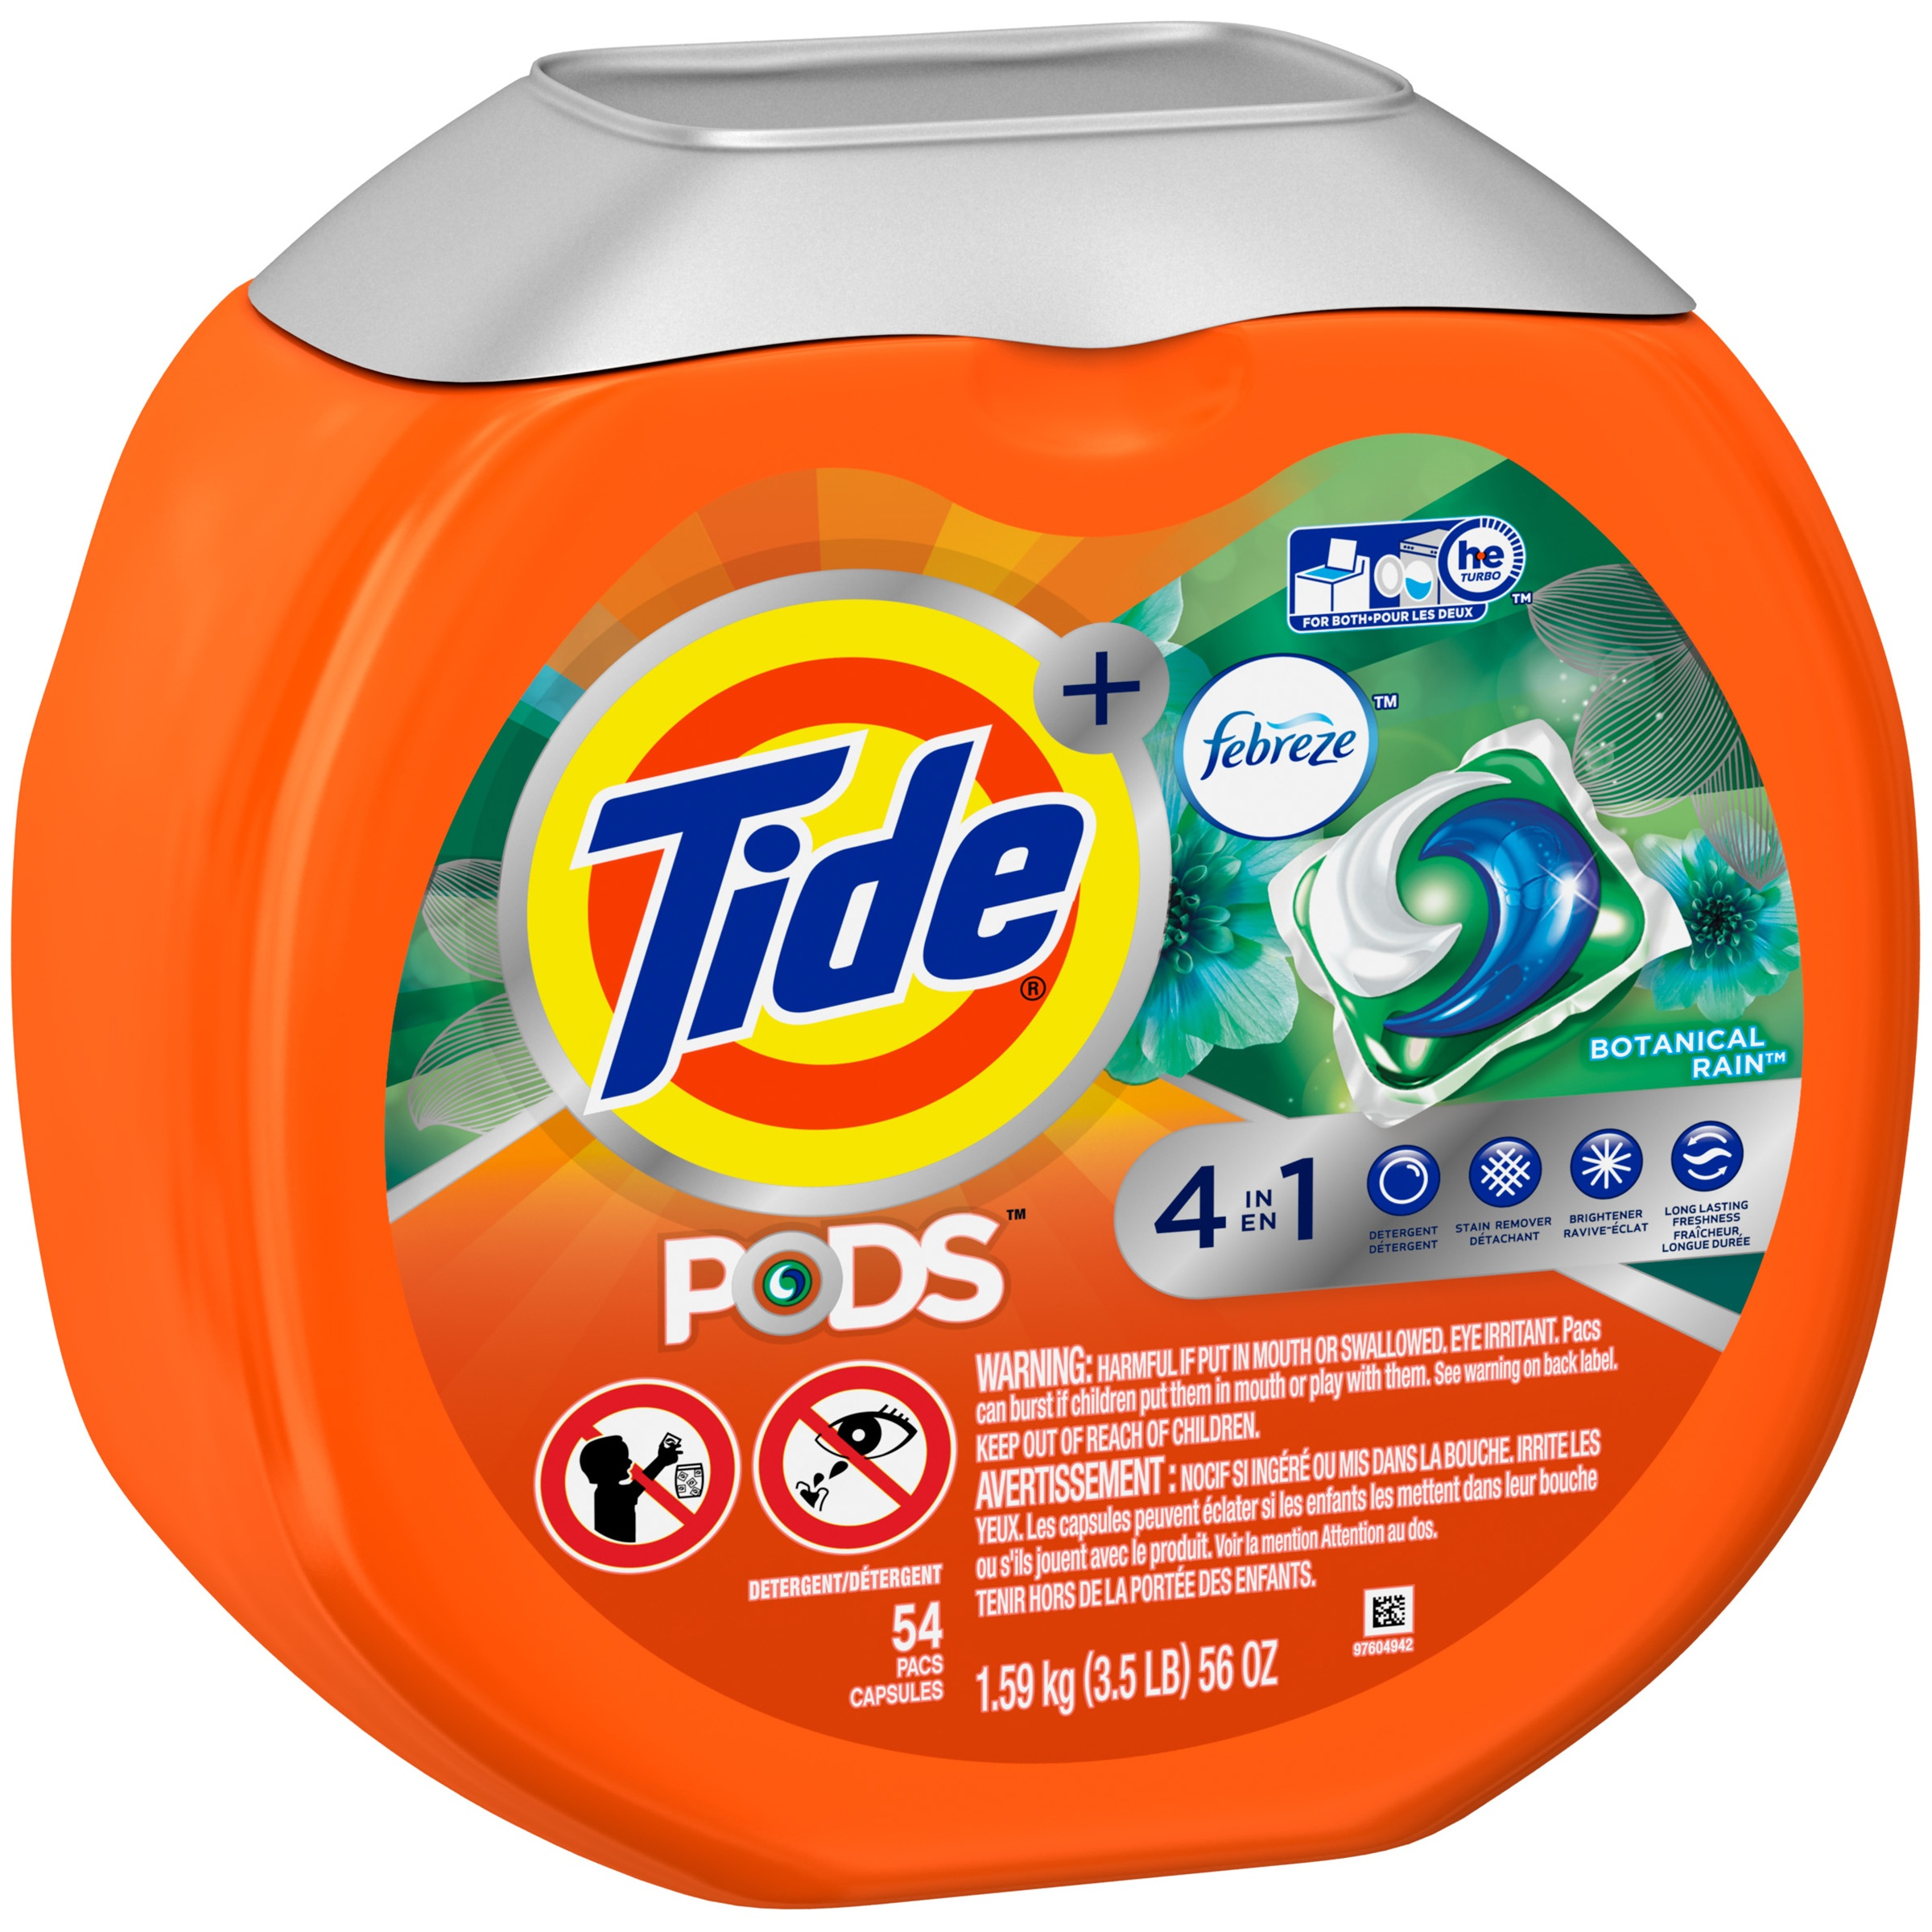 Tide PODS Plus Febreze Odor Defense Laundry Detergent Pacs, Botanical Rain Scent, 54 Count